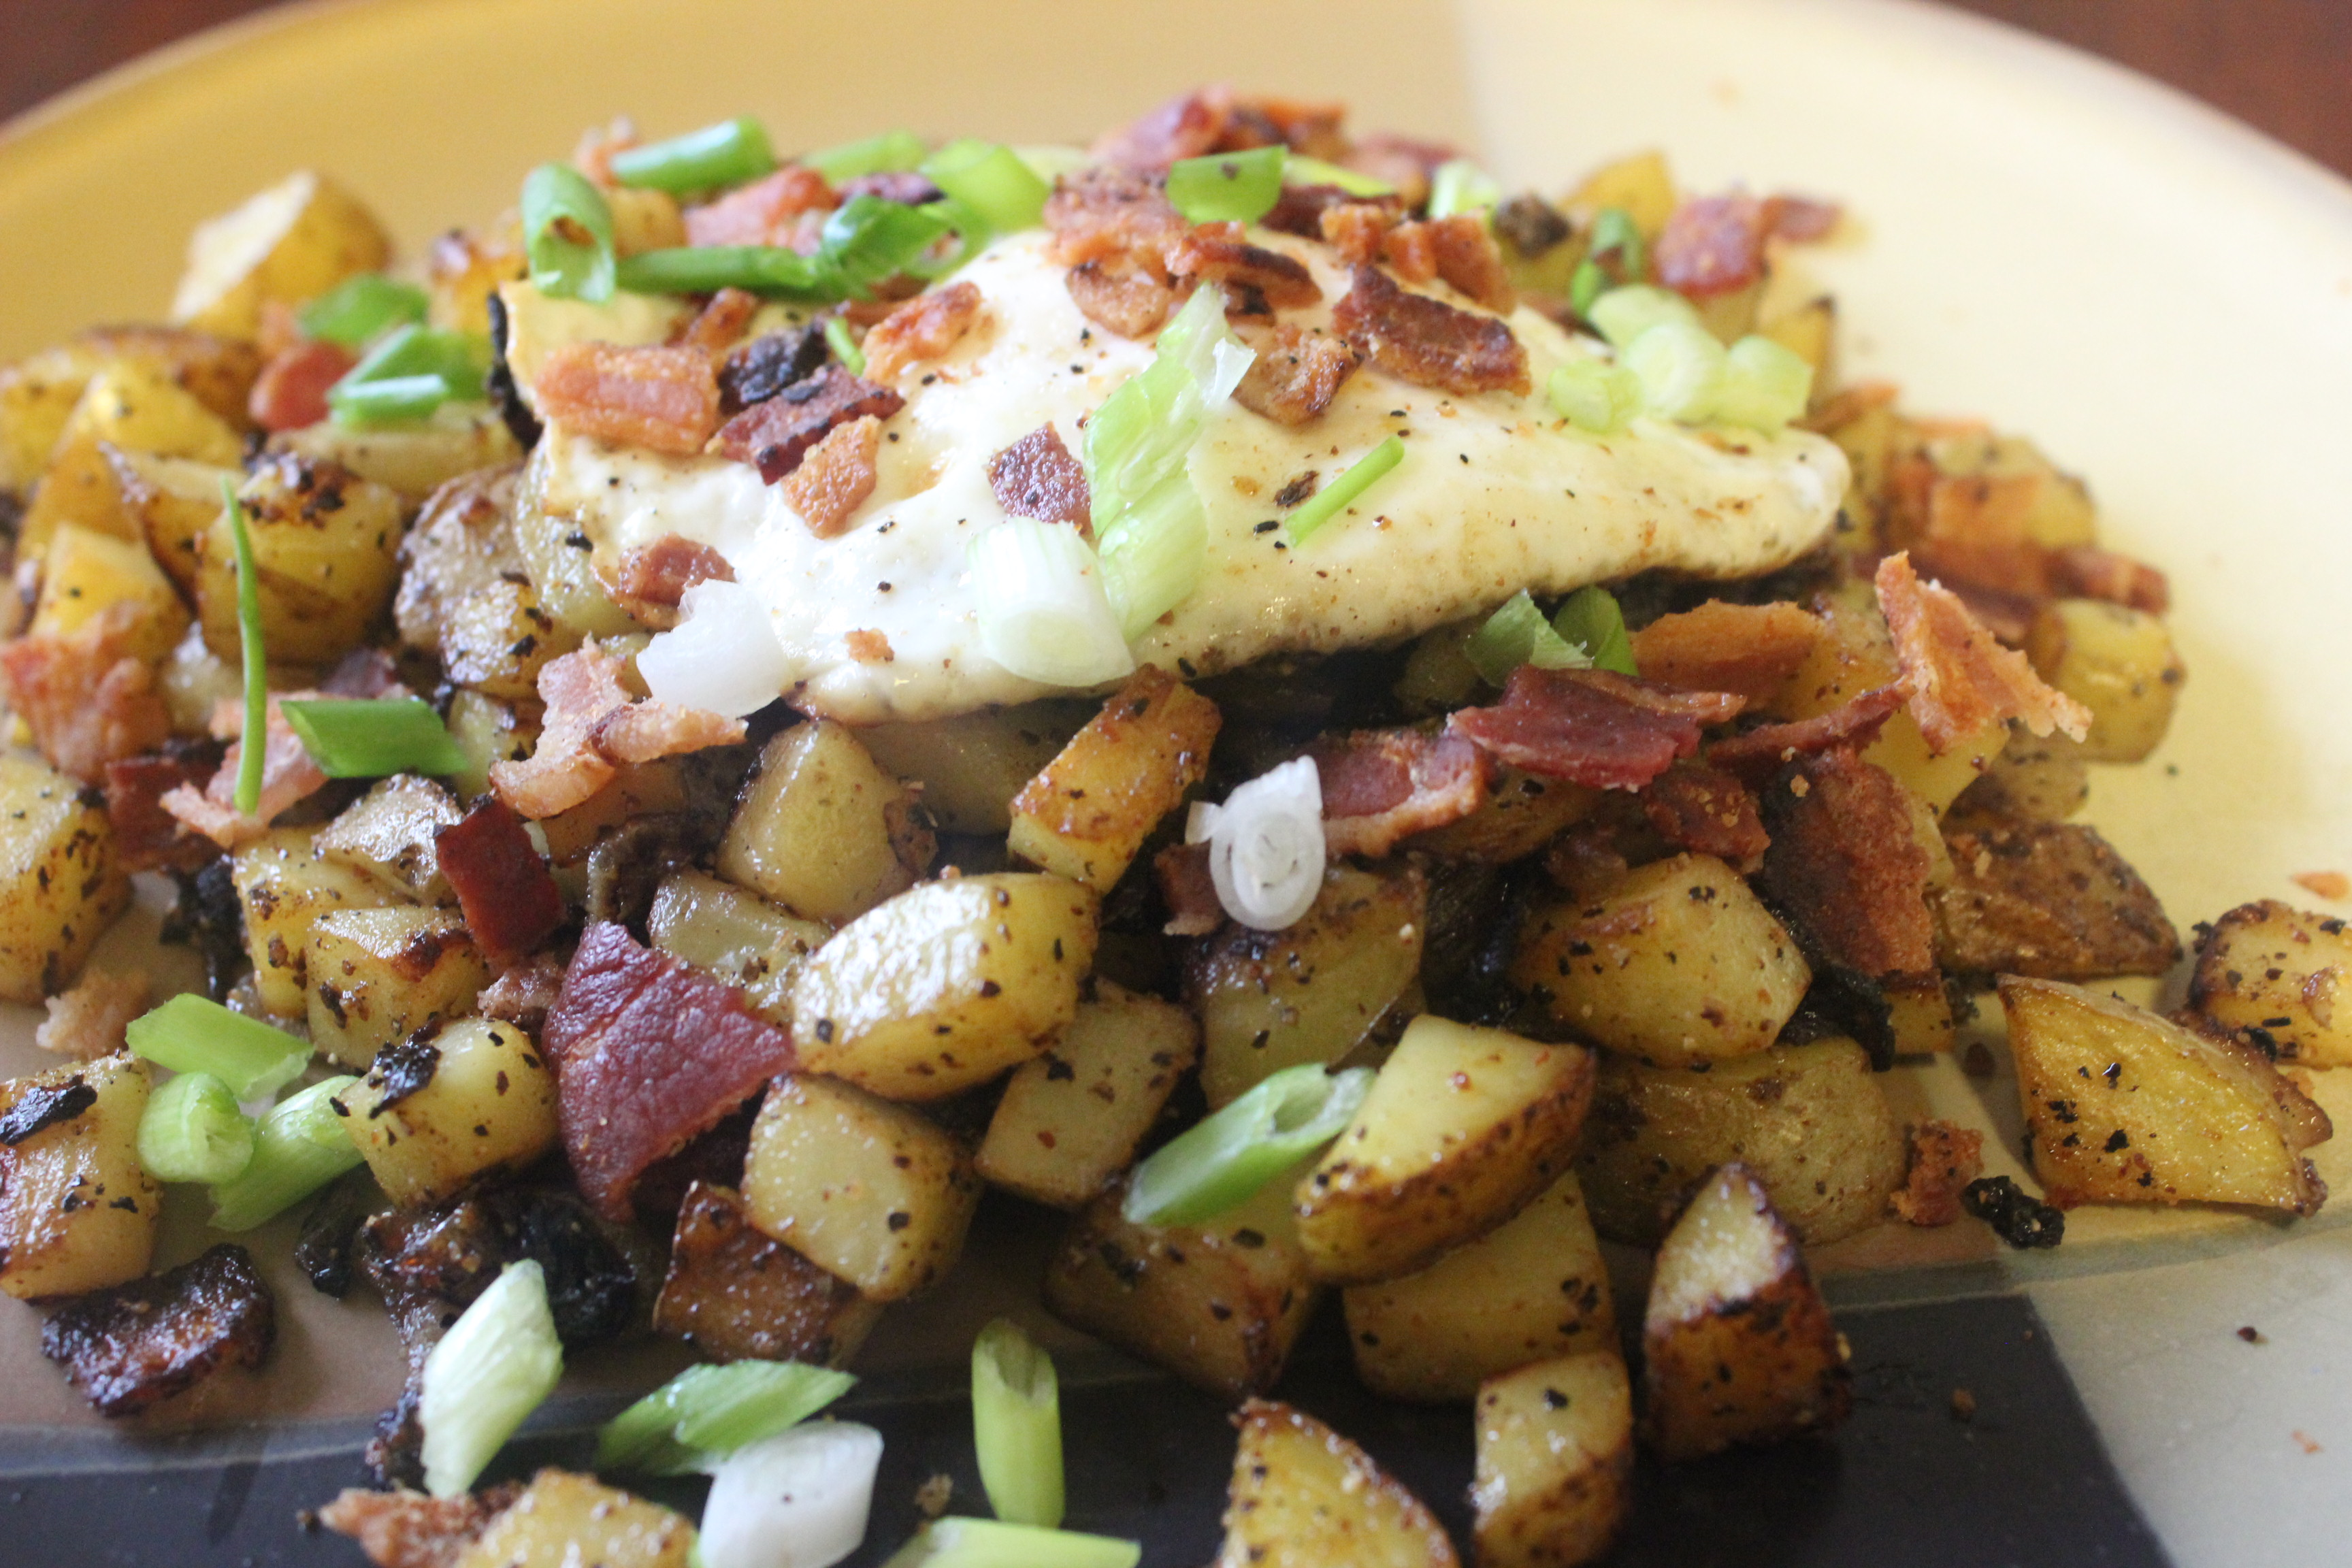 Homefried Potatoes with Garlic and Bacon mommyluvs2cook